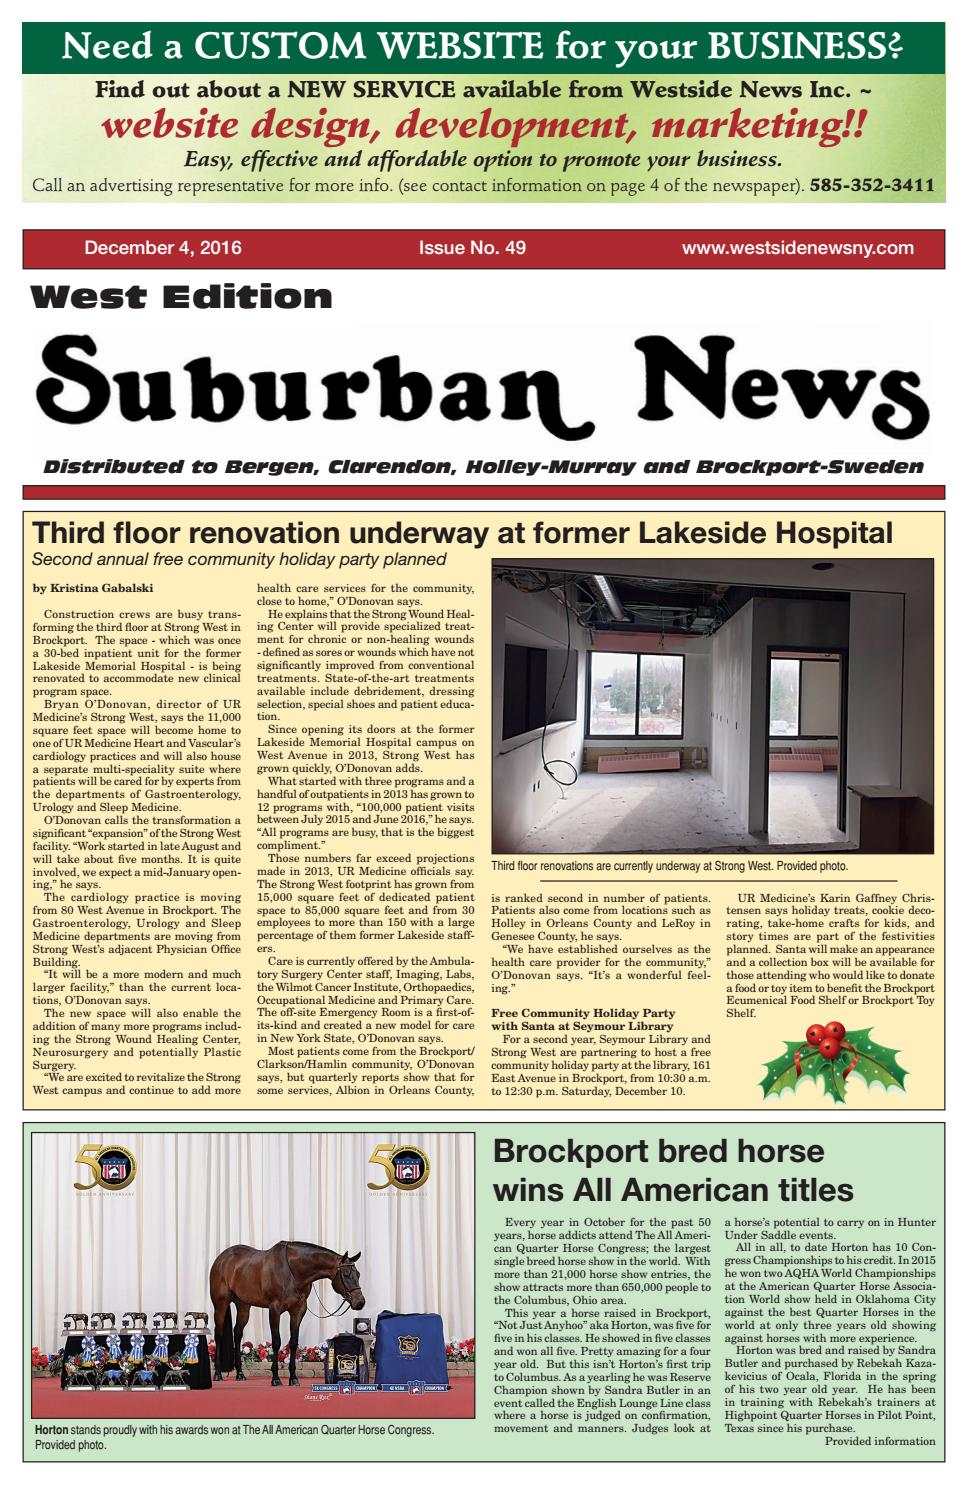 Suburban News West Edition - December 4, 2016 by Westside